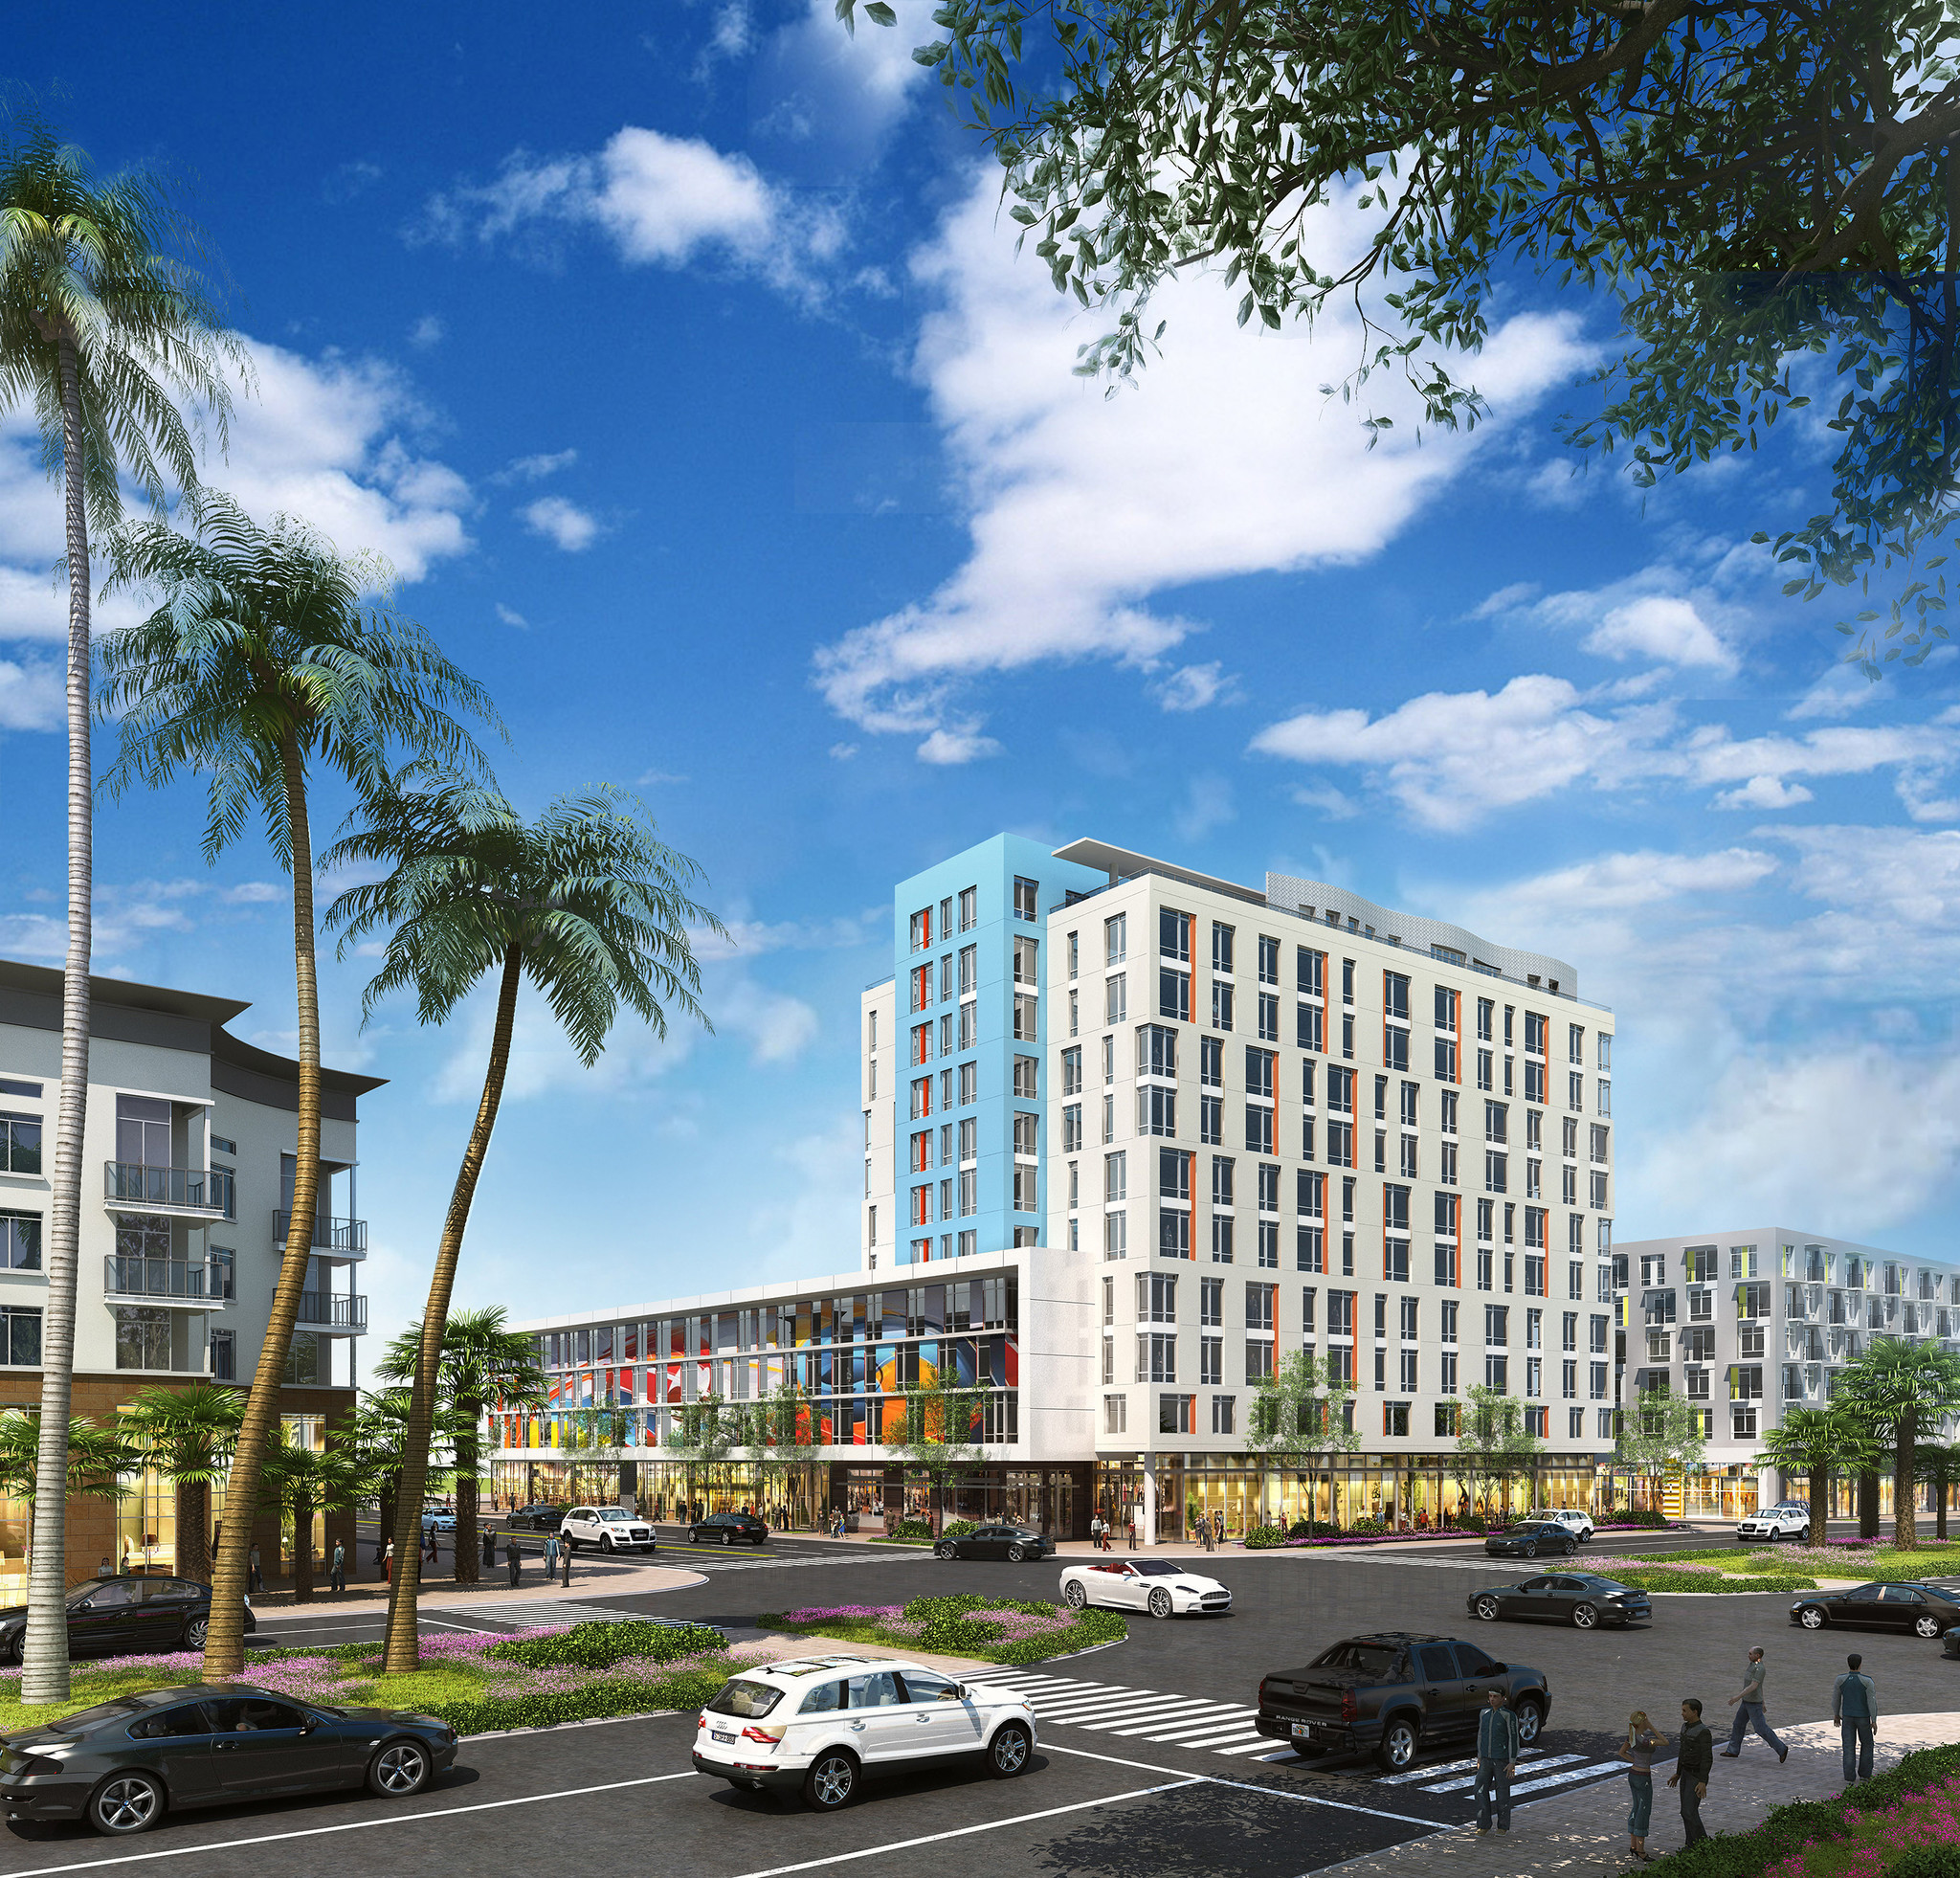 Town Center Apartments: Tavistock Eyes Q2 Start On Building With Micro-apts Near